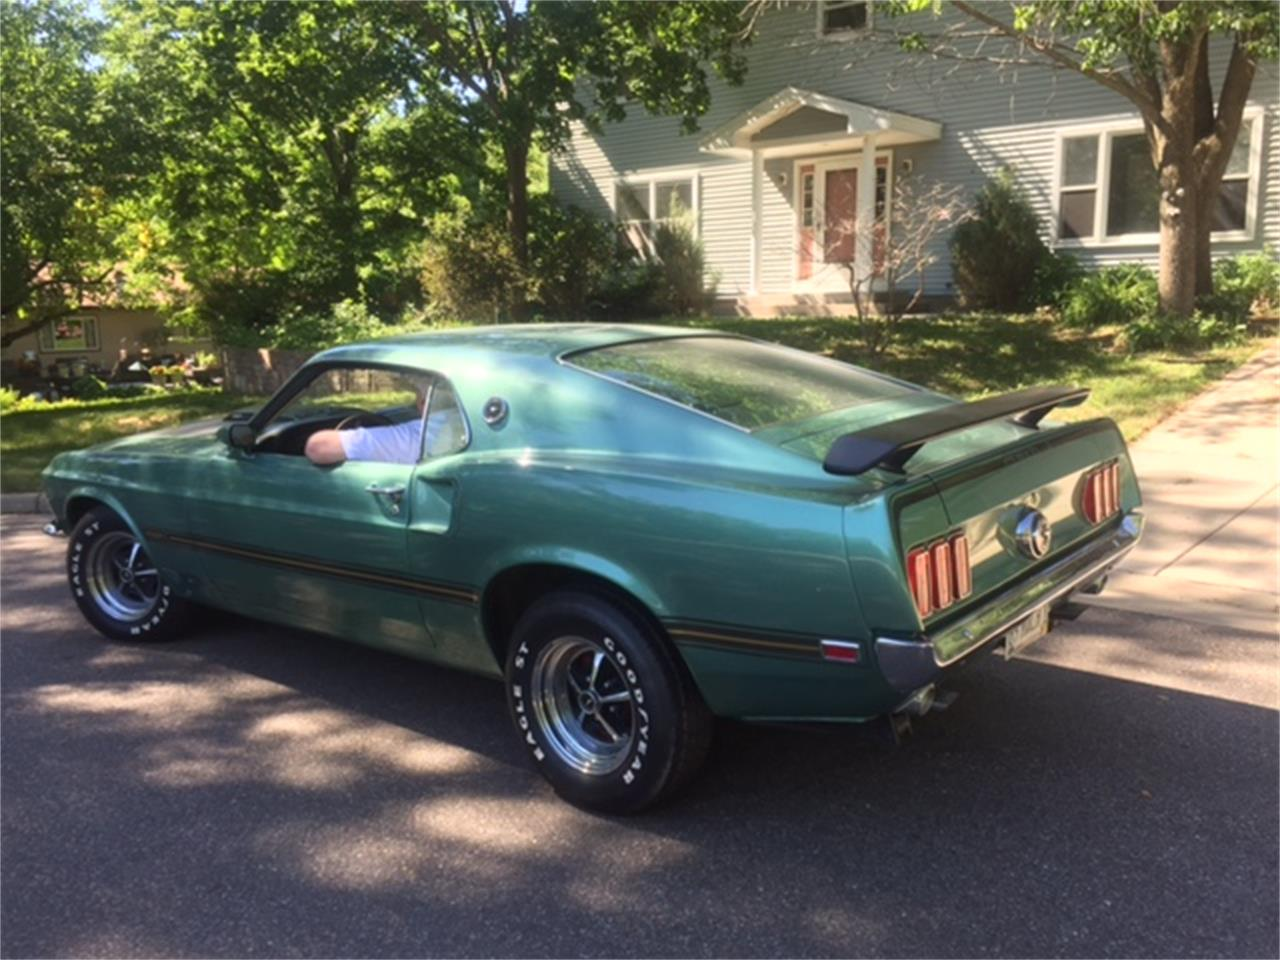 1969 Ford Mustang Mach 1 for sale in WESTON, WI – photo 6